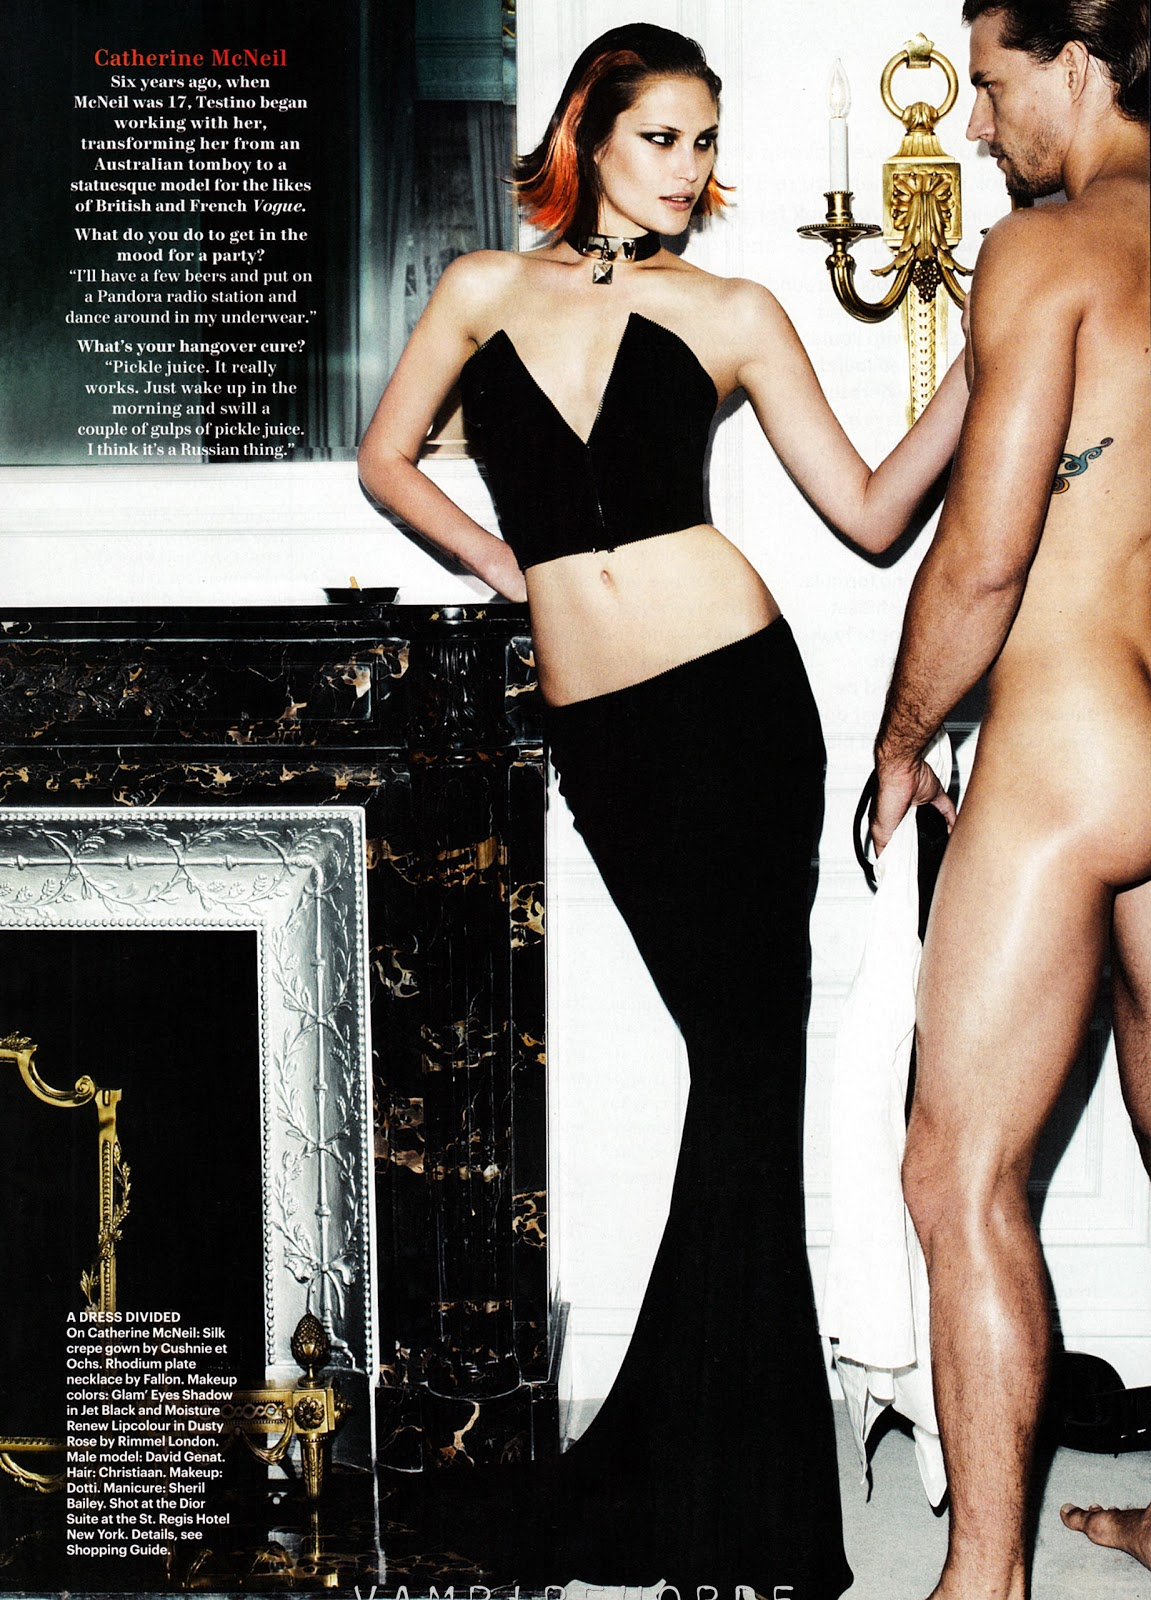 http://2.bp.blogspot.com/-z7lz566cQ6Q/UKQRSIYnoDI/AAAAAAAAbTQ/2QAPQZeDq58/s1600/fashion_scans_remastered-mario_testino-allure_usa-december_2012-scanned_by_vampirehorde-hq-10.jpg